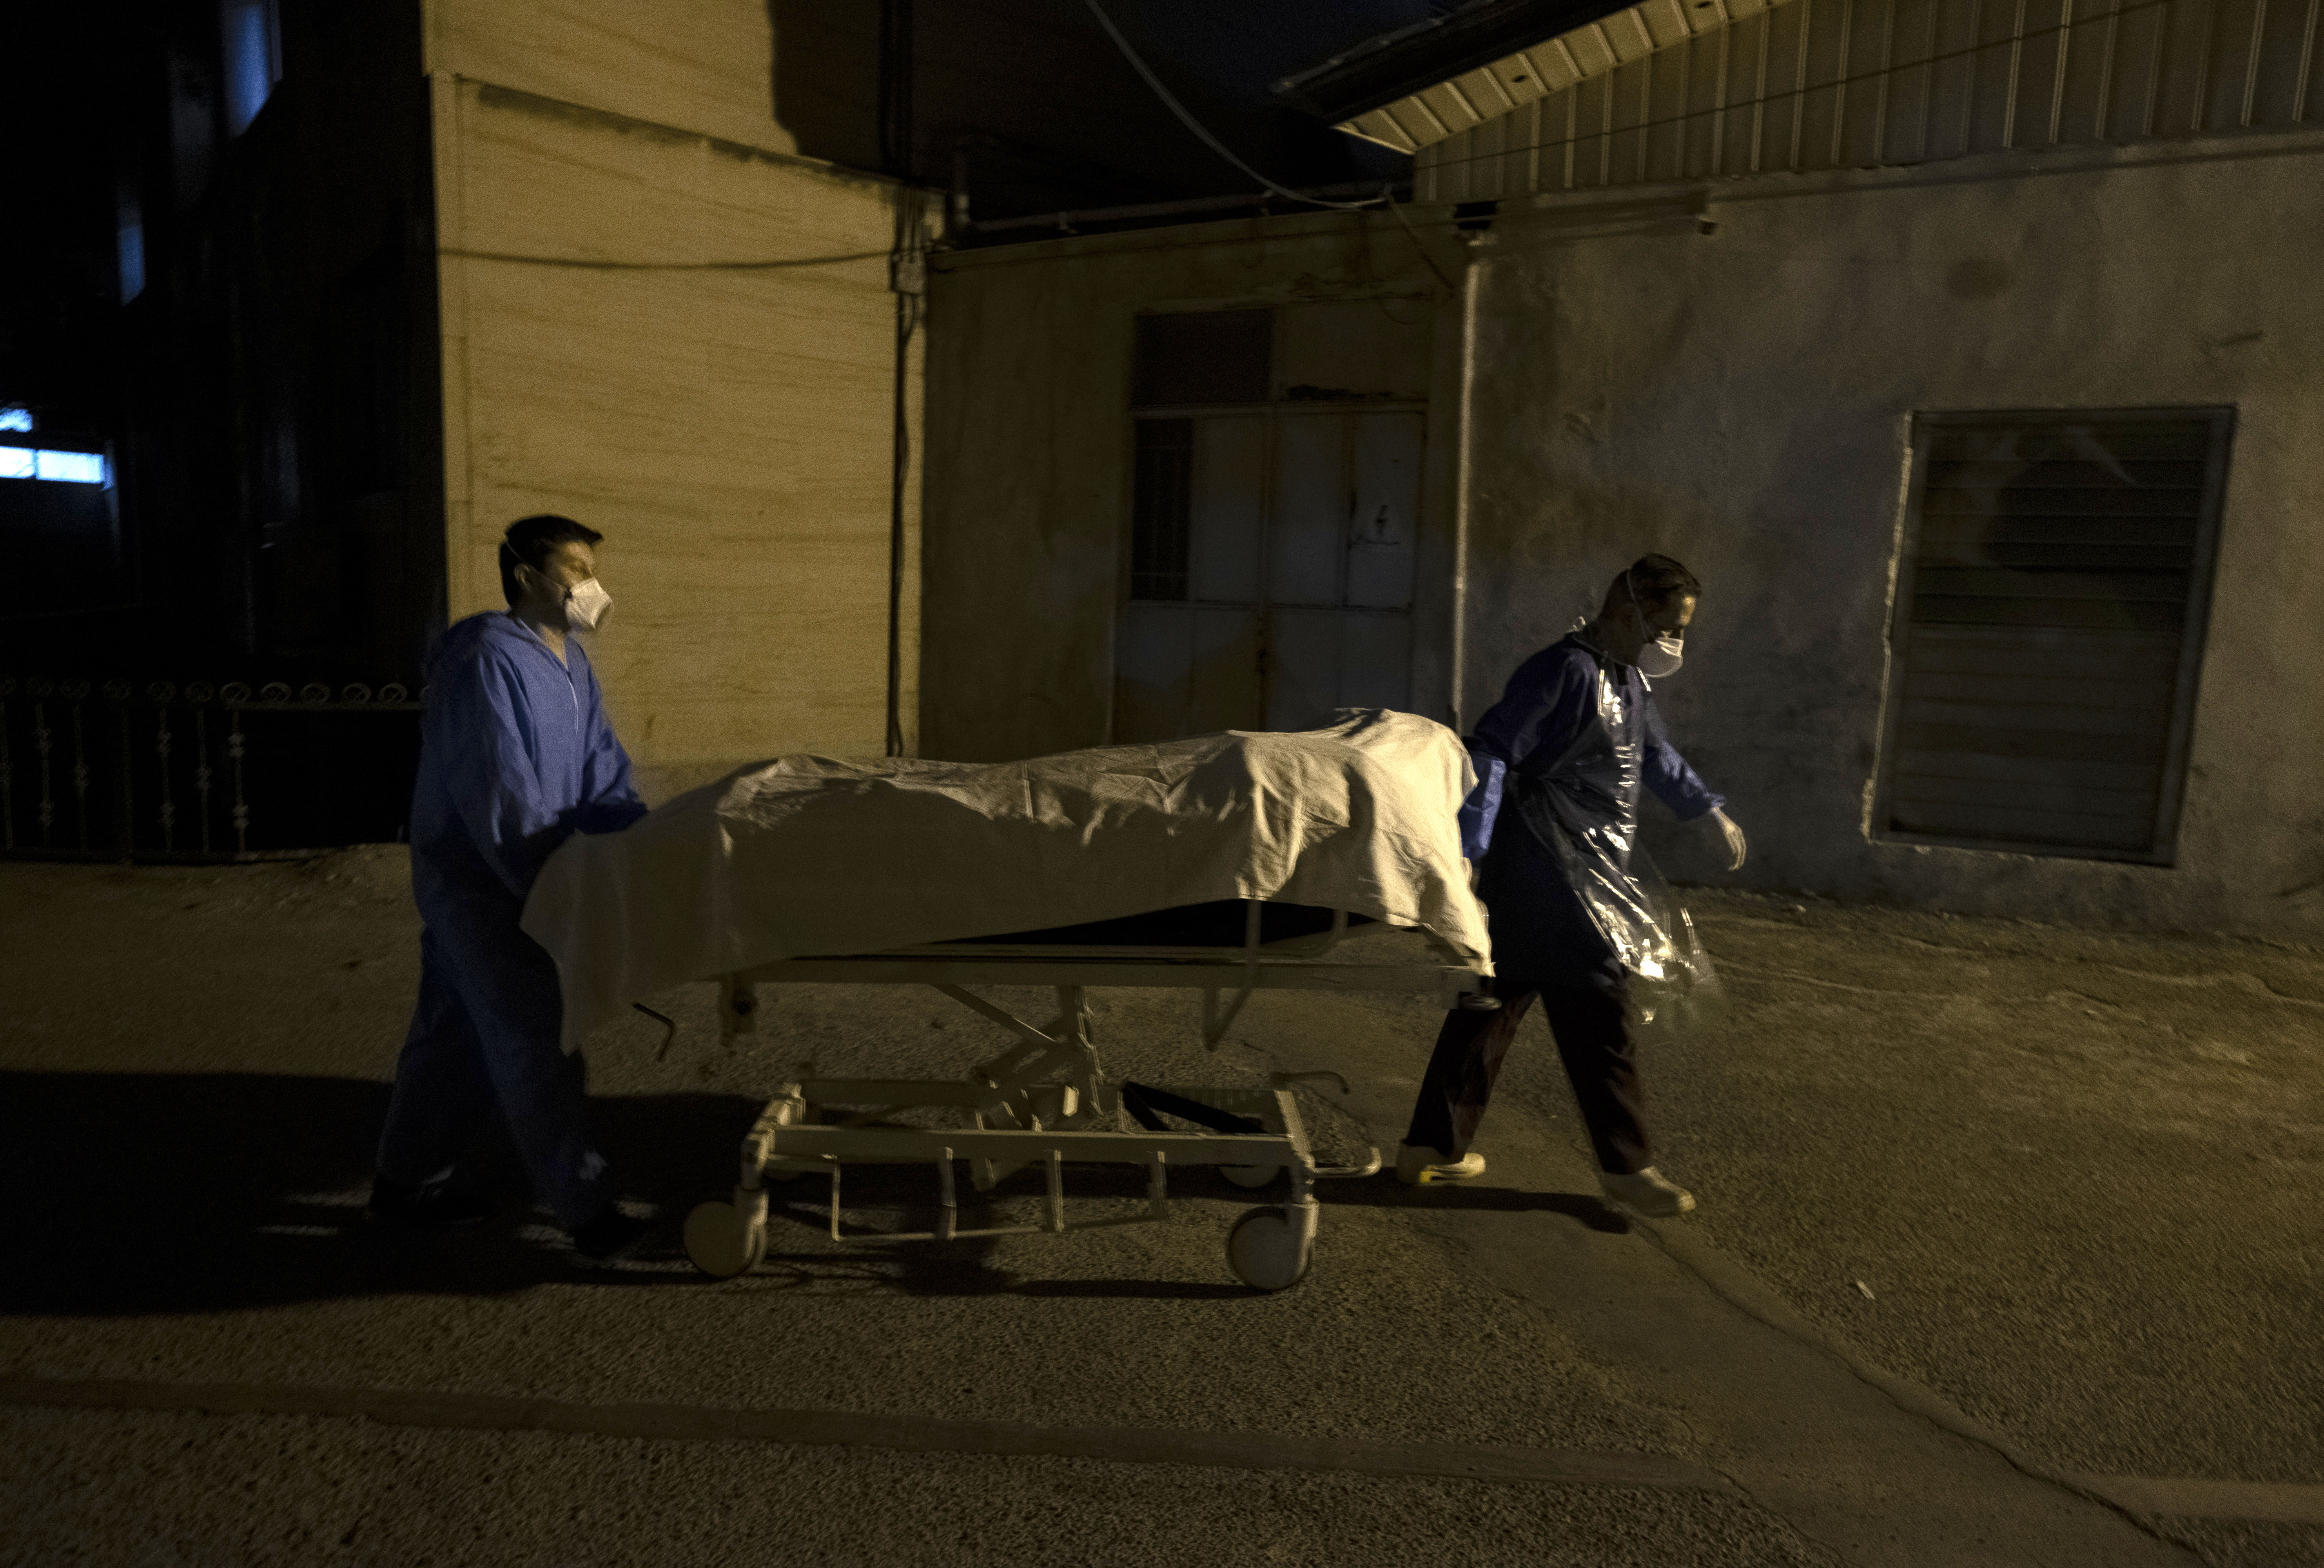 Hospital personnel take the bodies of two people said to have died from Covid-19 to a morgue in the Shahr-e Rey neighborhood in southern Tehran, Iran, on June 20.